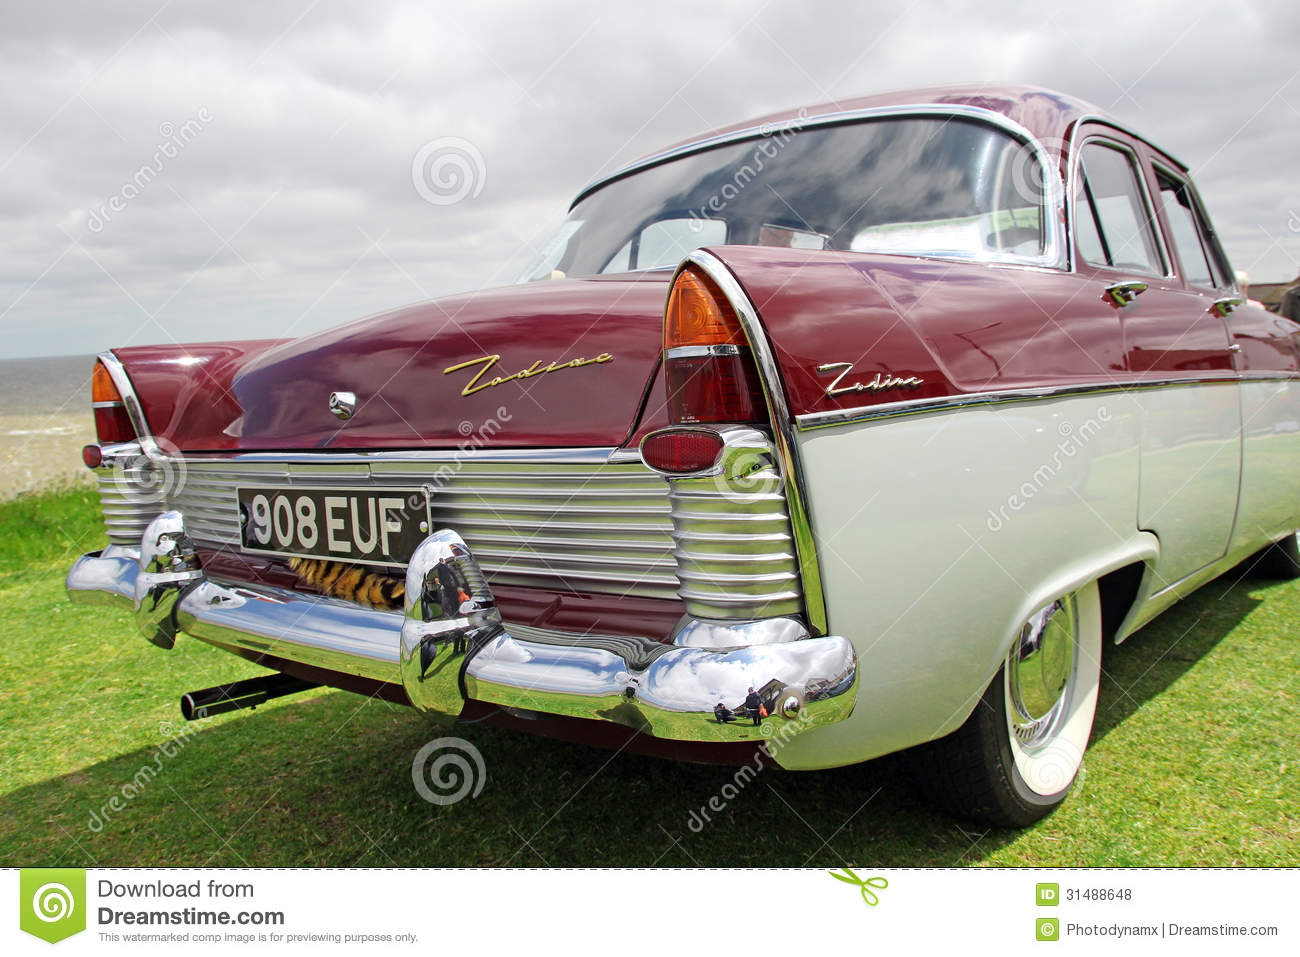 Vintage Zodiac Car Editorial Stock Photo Image Of Motor - Ideal classic cars car show